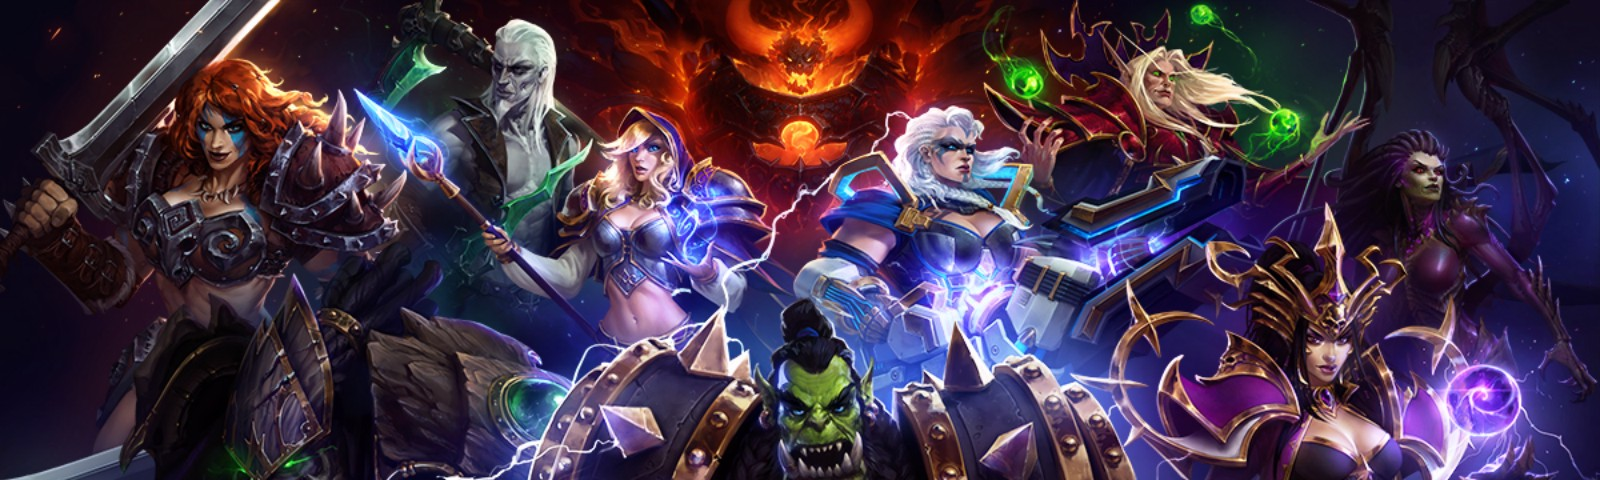 Heroes Of The Storm Get 20 Heroes For Free By Logging In By Sam Lee Hollywood Com Esports Dehaka release date is likely 29th march. heroes of the storm get 20 heroes for